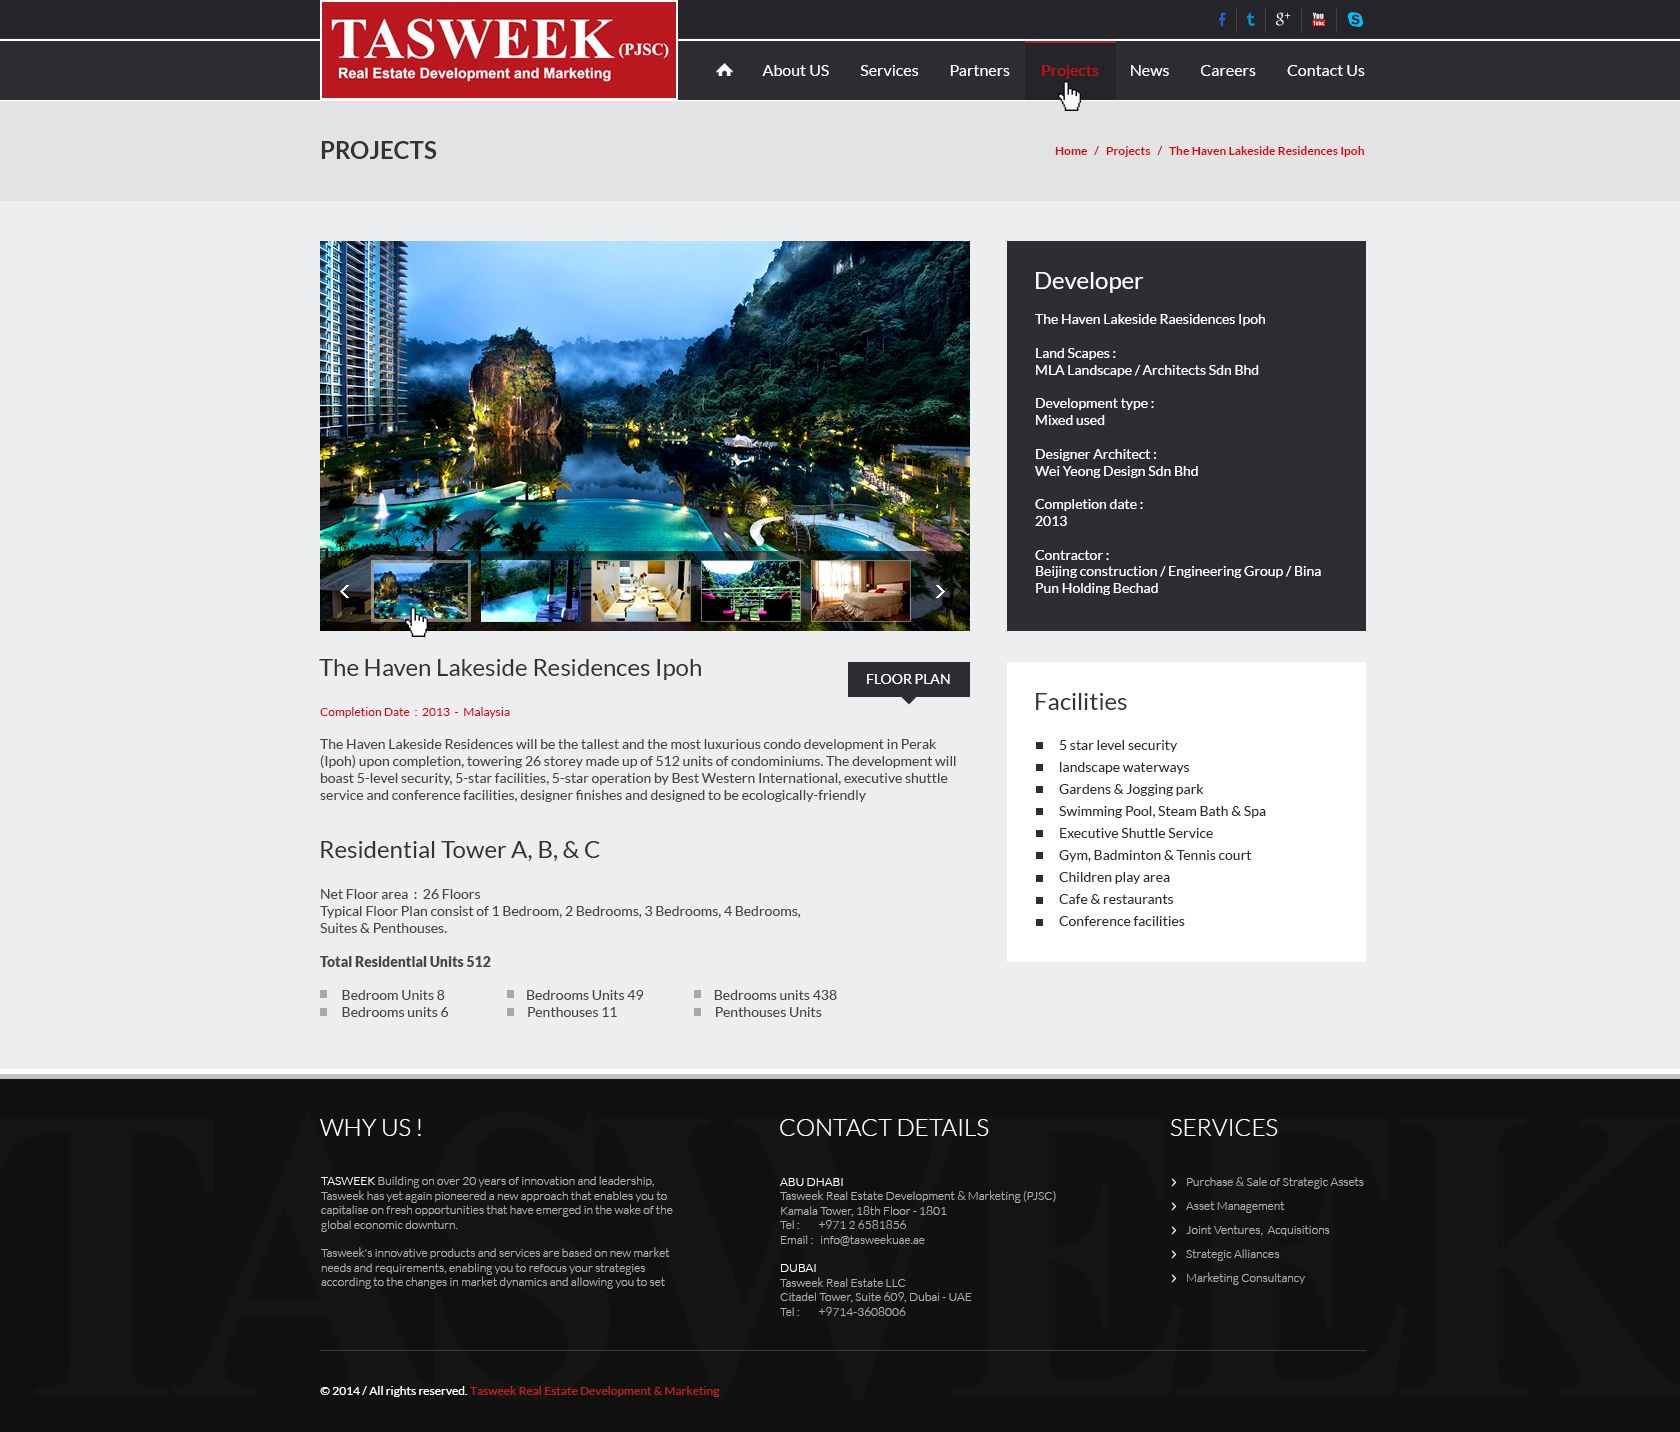 Tasweek-projects-details